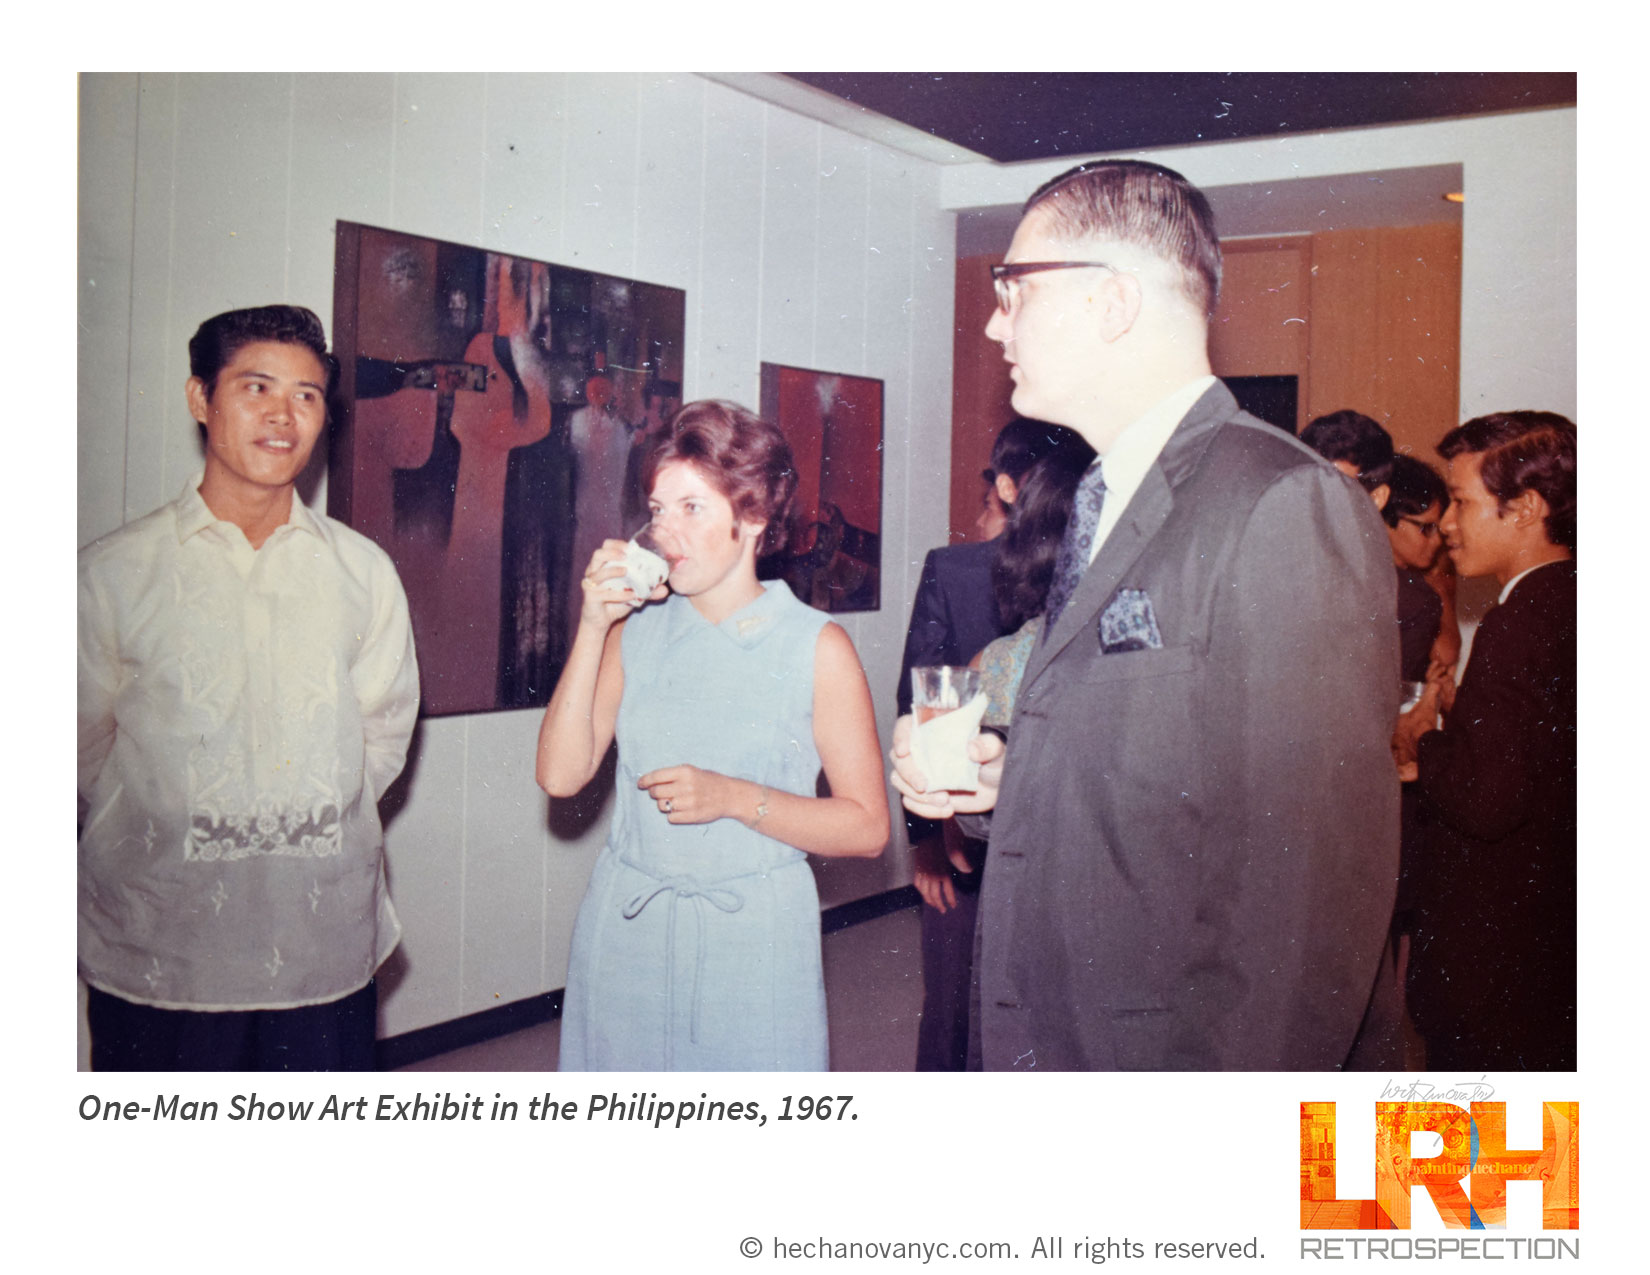 1967-One-Man Show Philippines